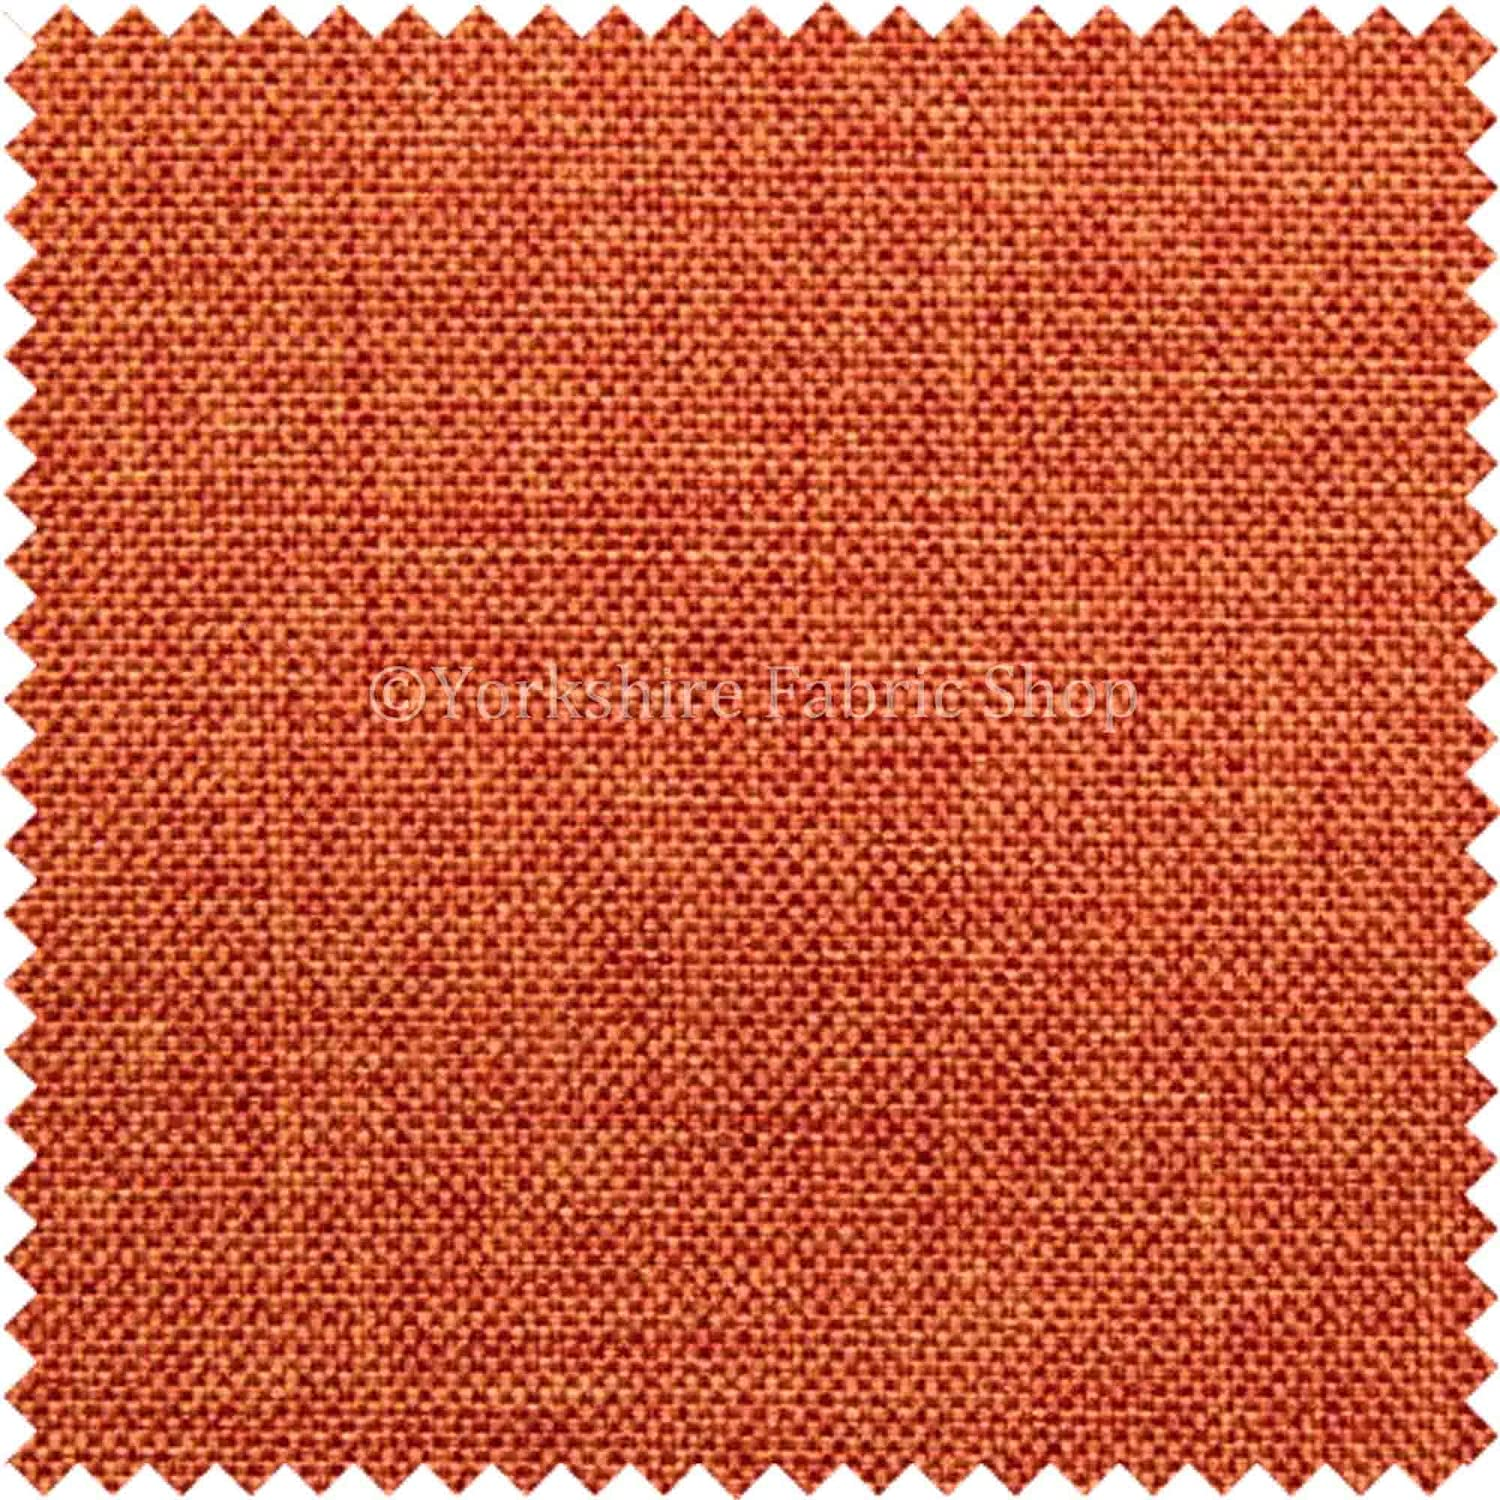 Light Weight Durable Chenille Red Terracotta Drapery Curtain Upholstery Fabrics